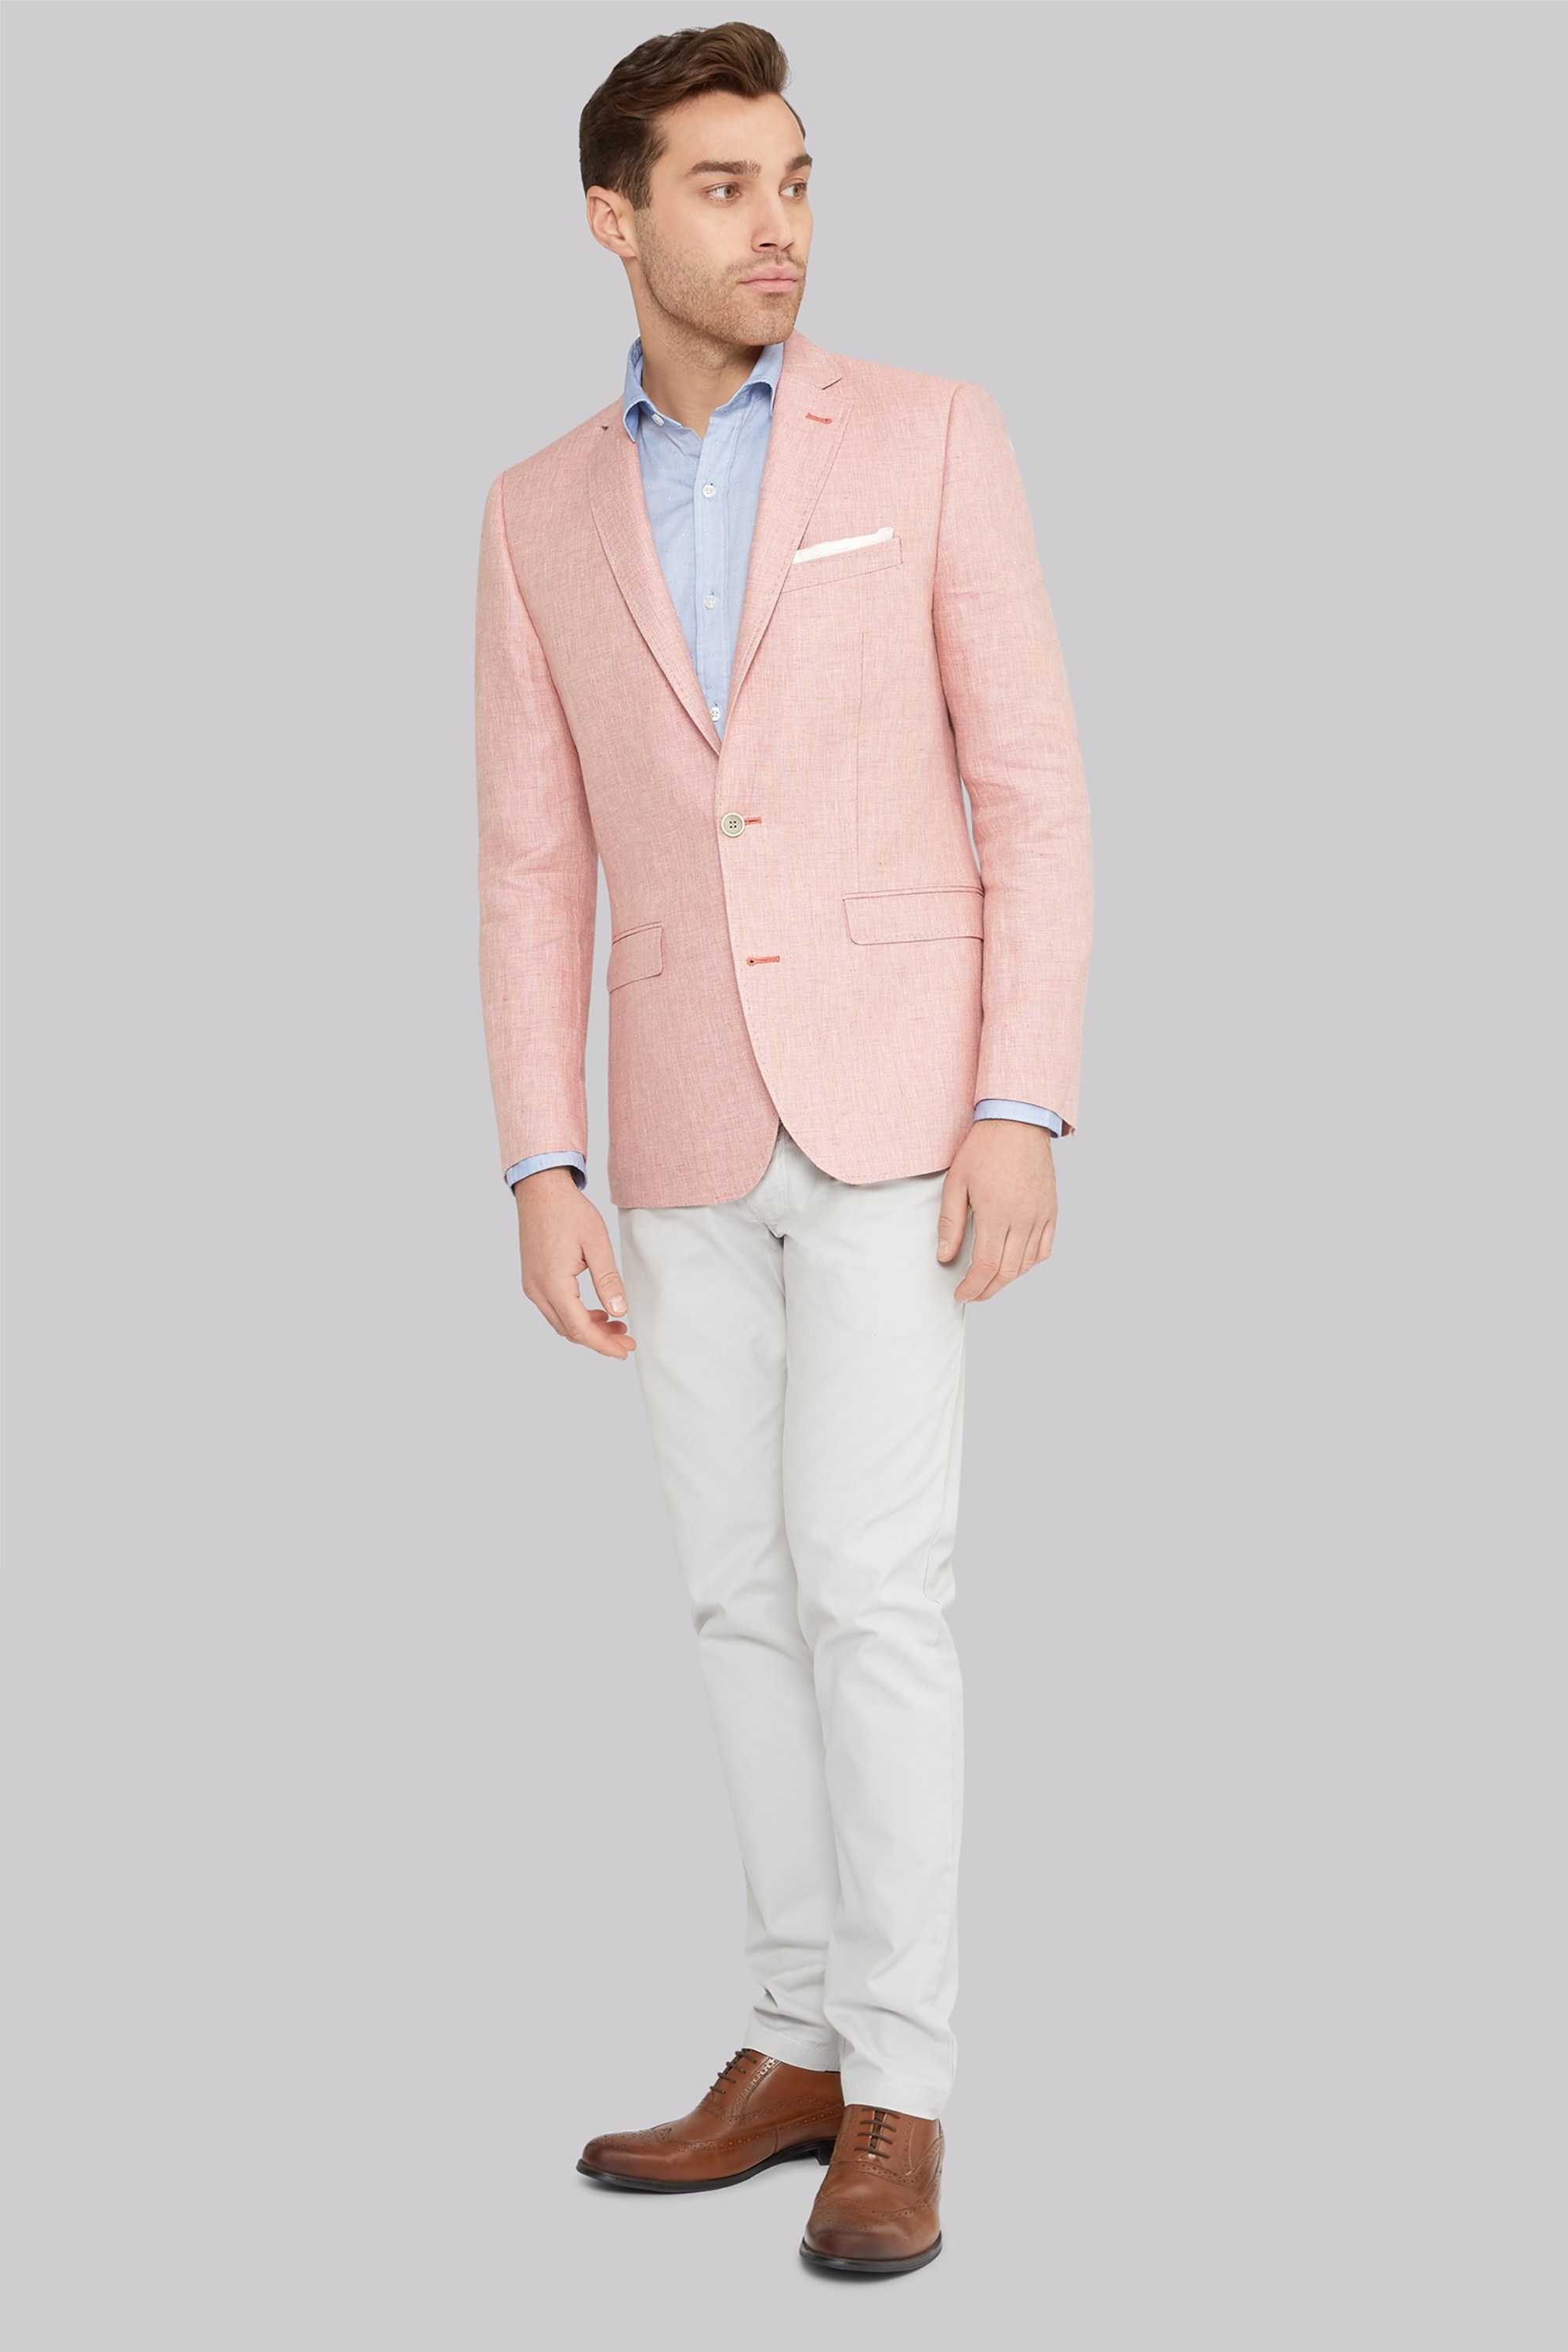 Clearance Jackets & Blazers for Men | Moss Bros.